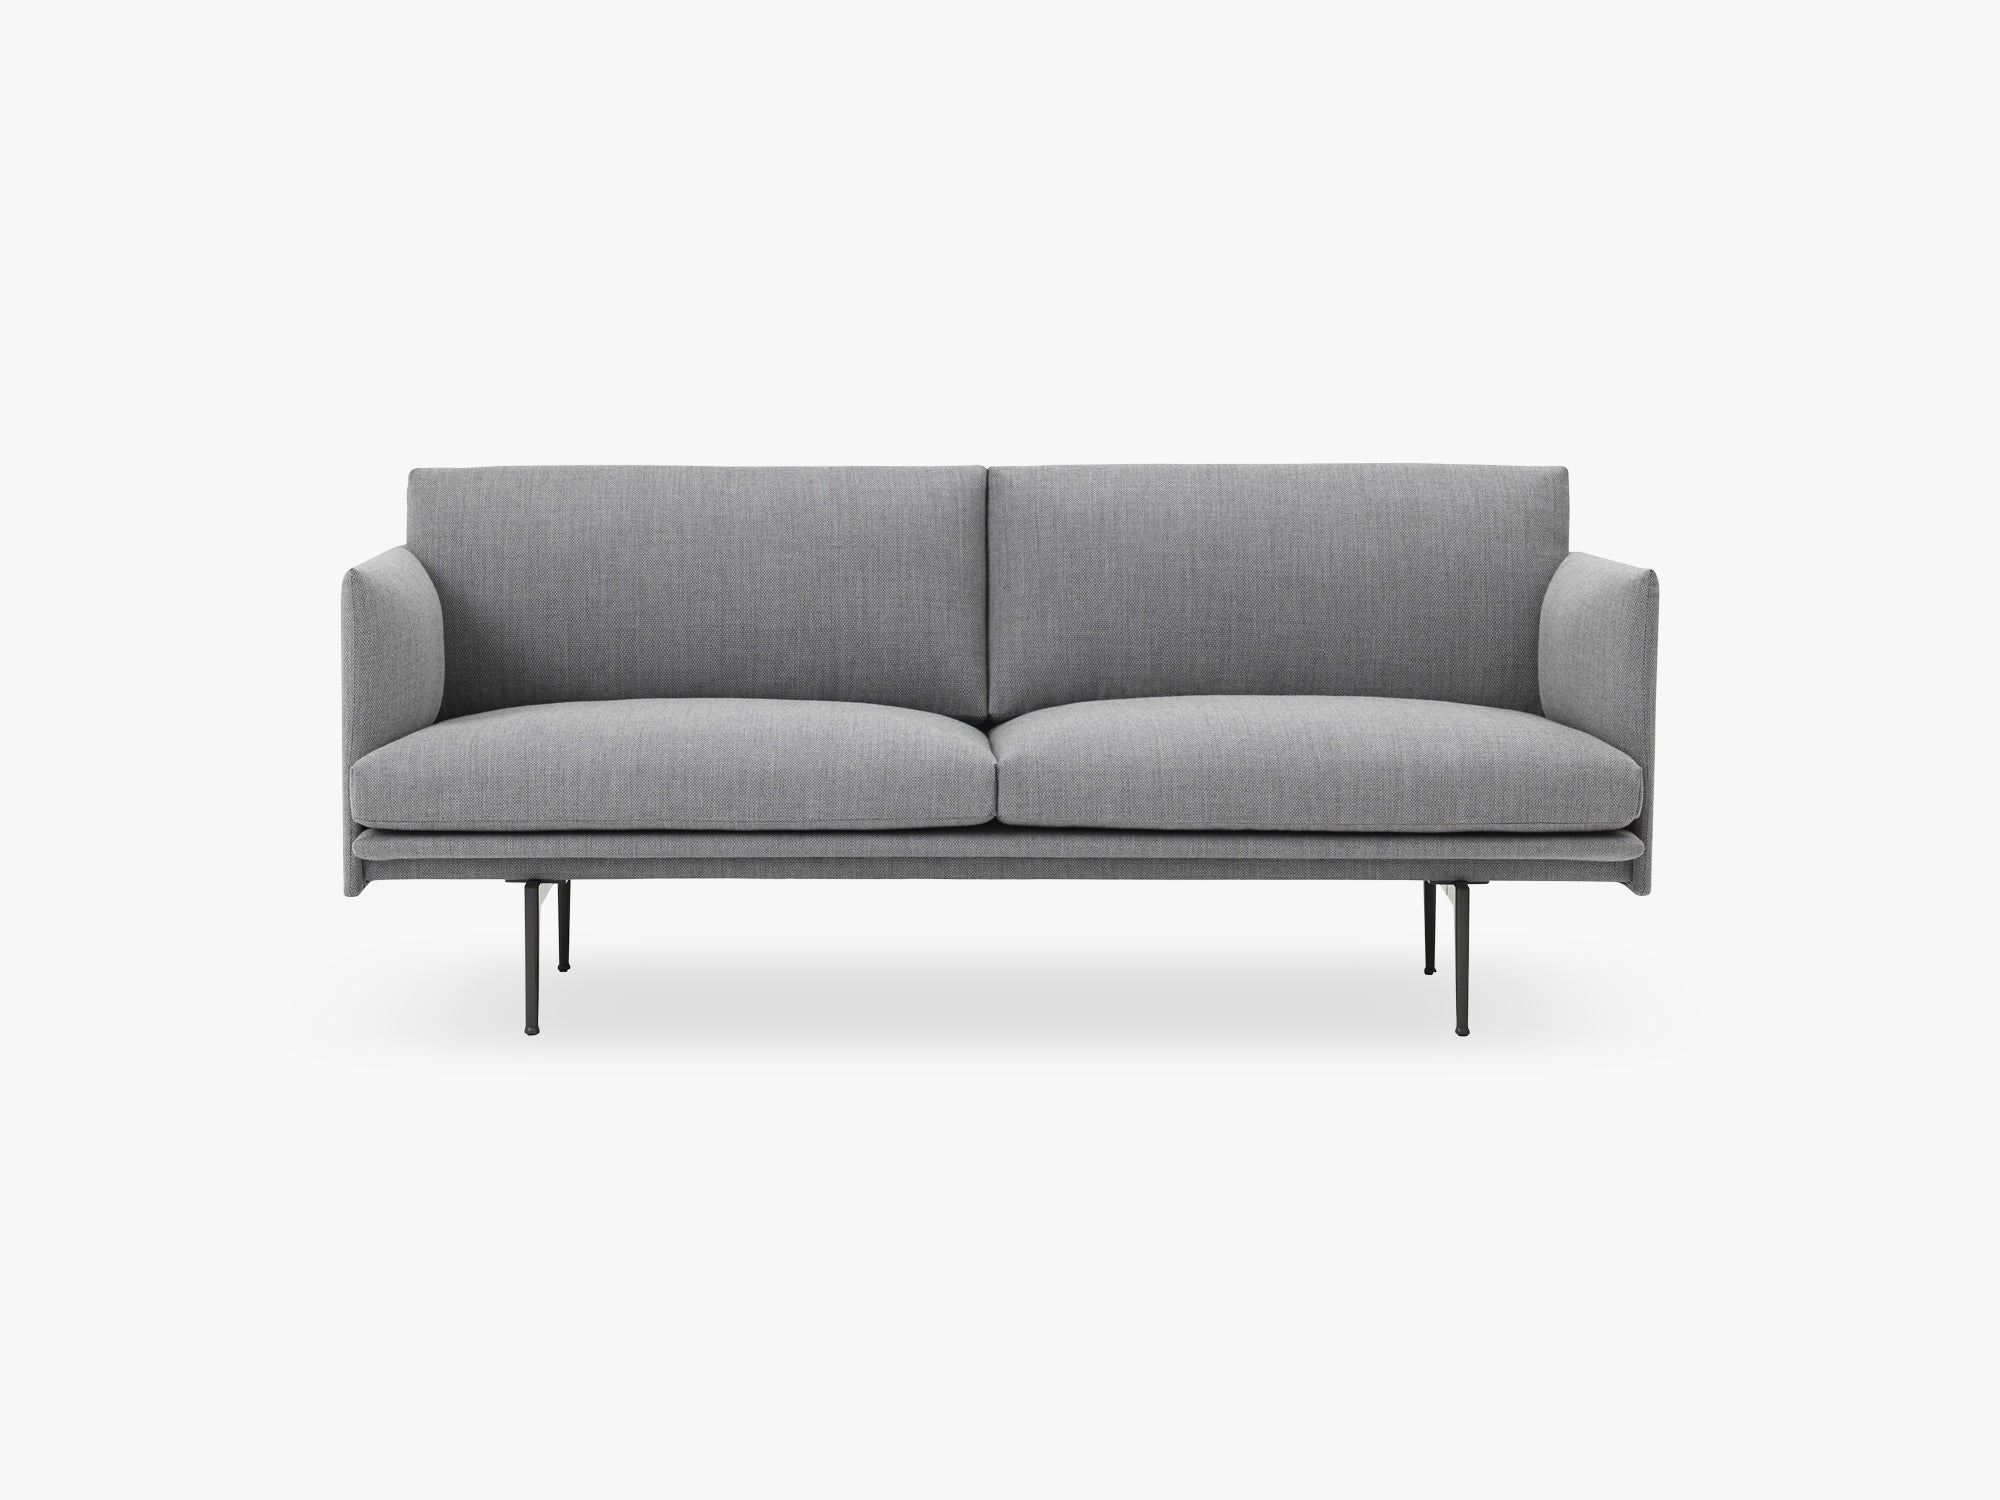 Outline Sofa - 2-Seater, Fiord 151 fra Muuto